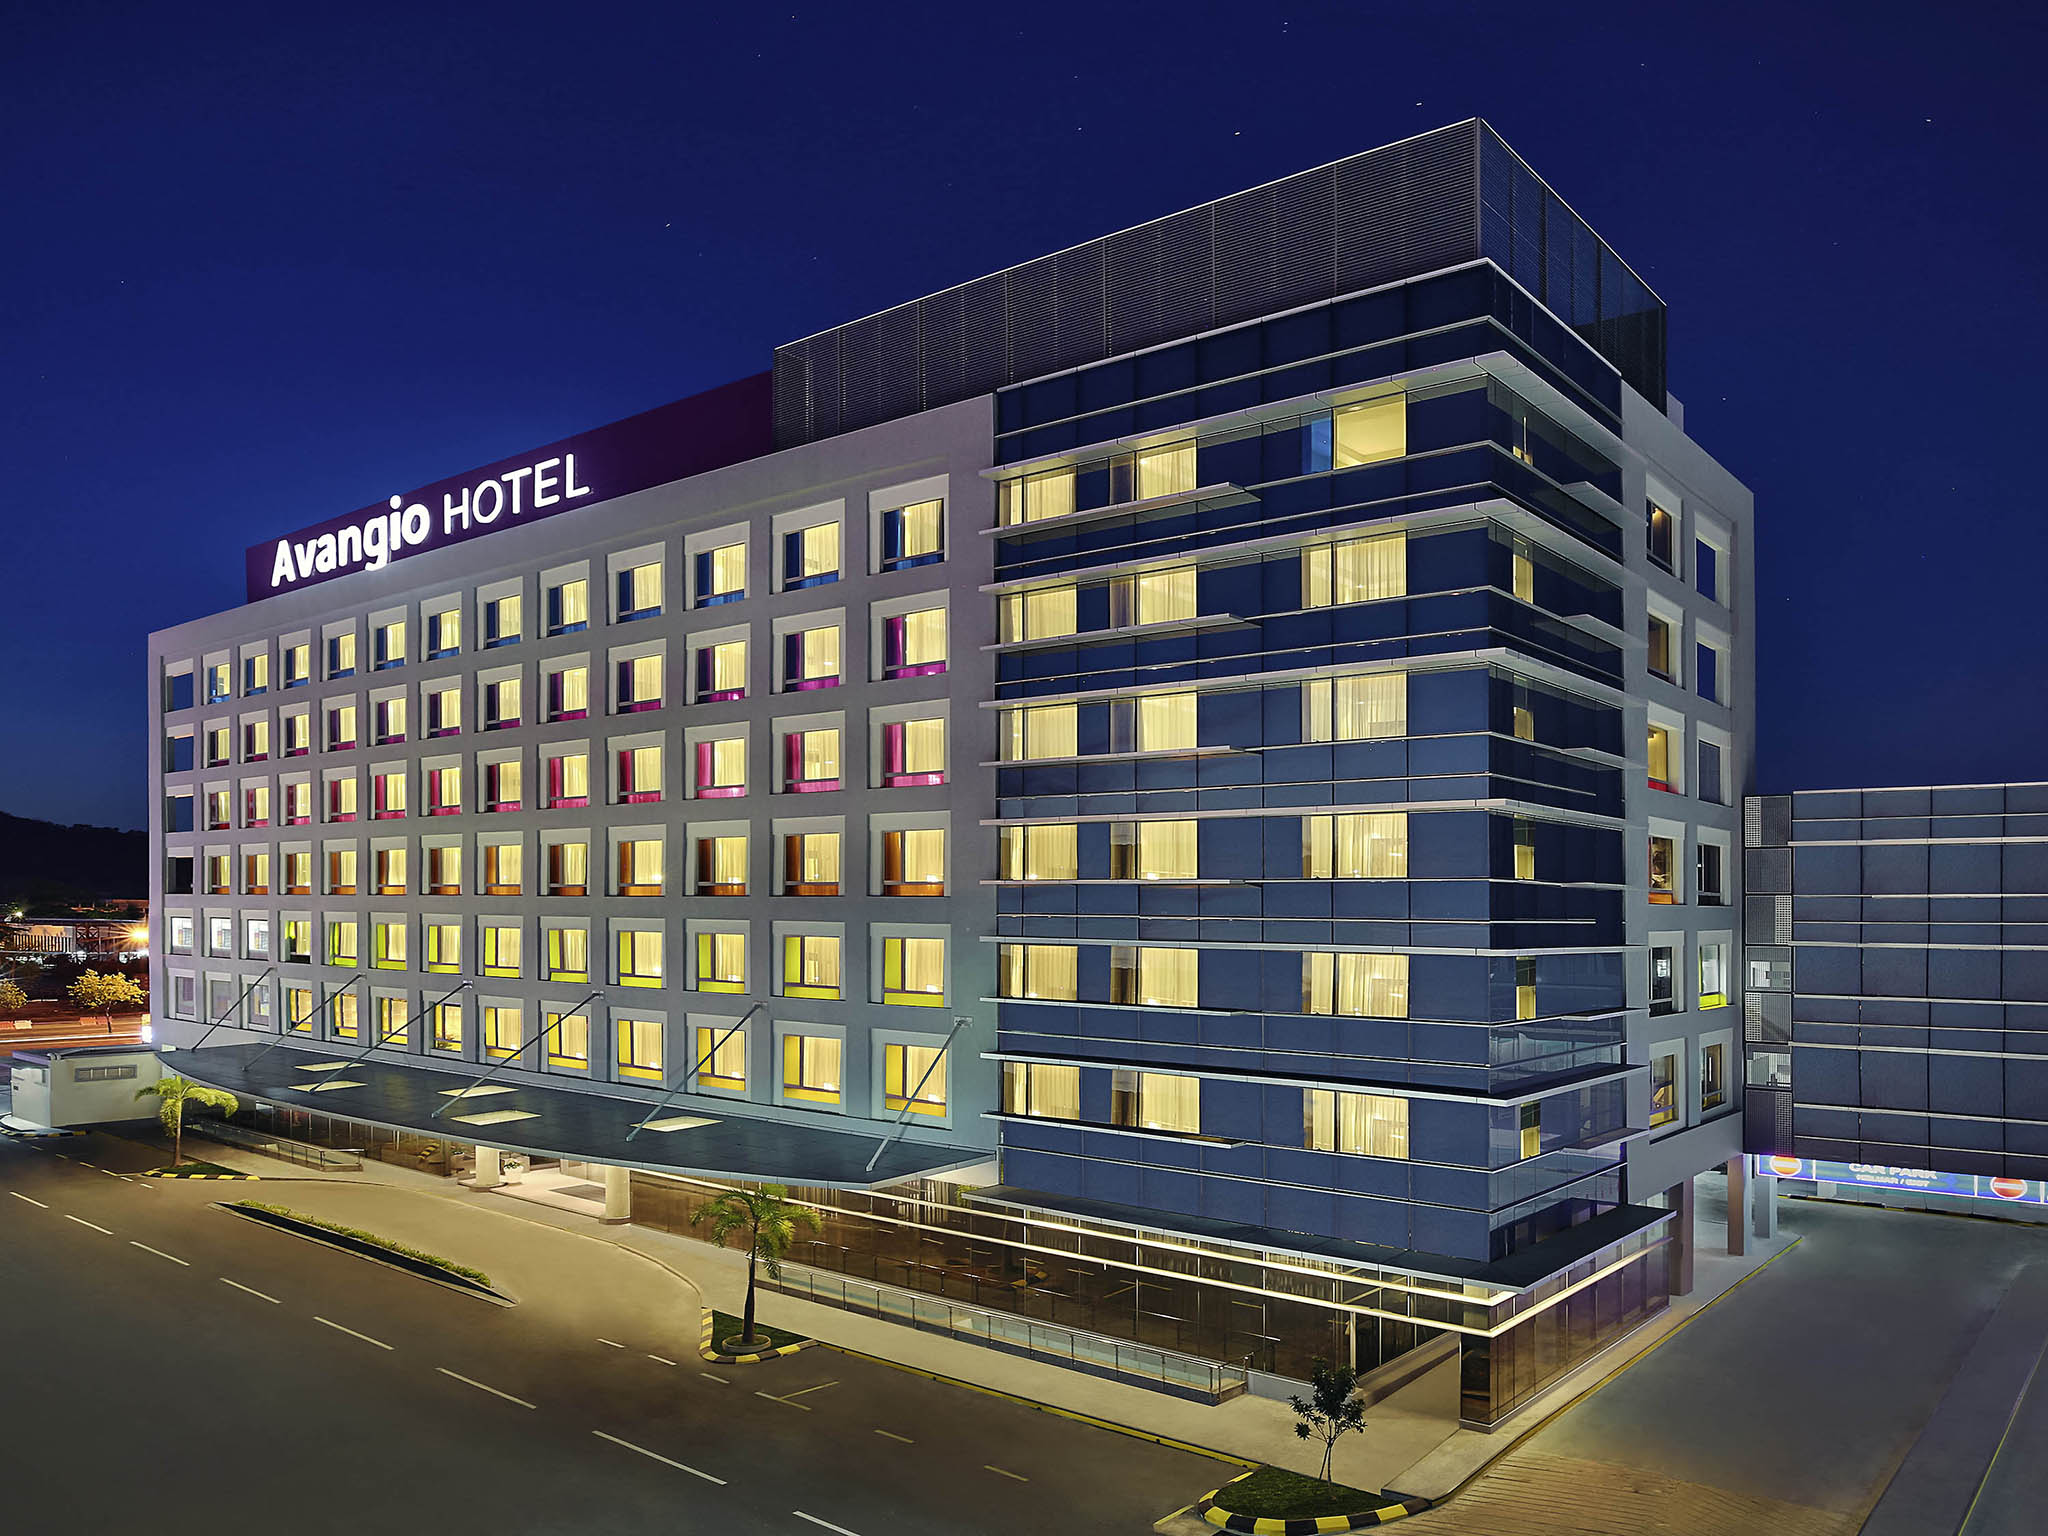 Hotel Avangio Kota Kinabalu Managed By Accorhotels